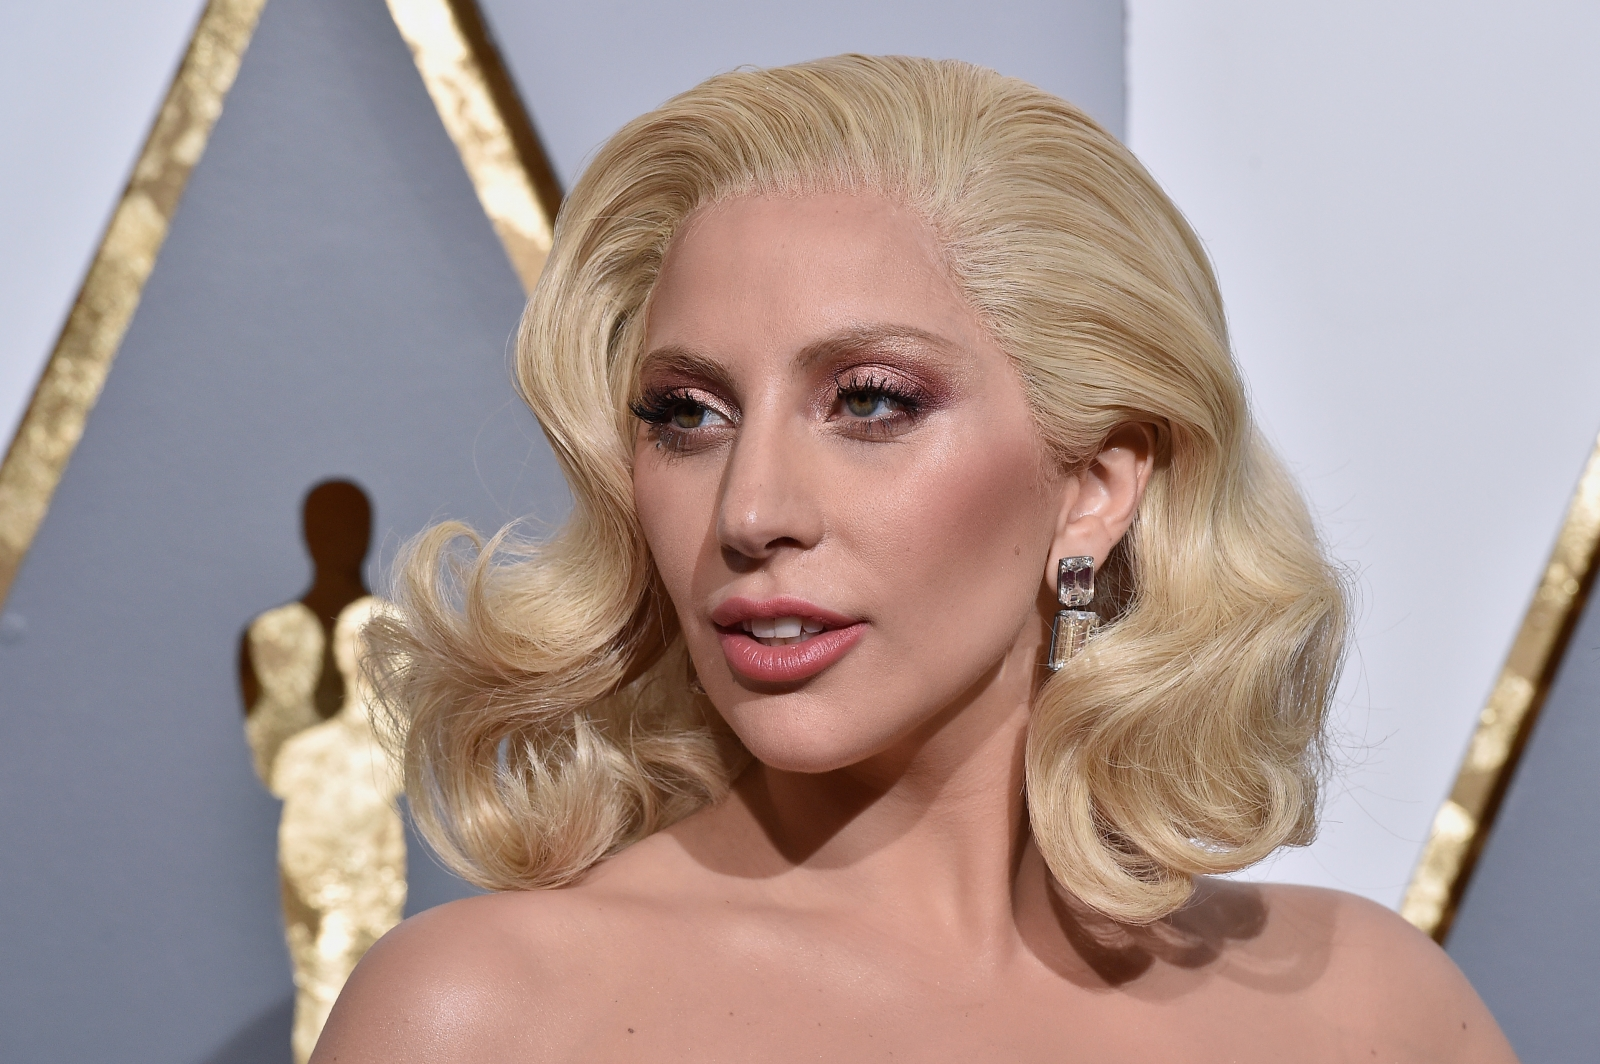 Lady Gaga's will headline next year's Super Bowl half-time show Kevor...